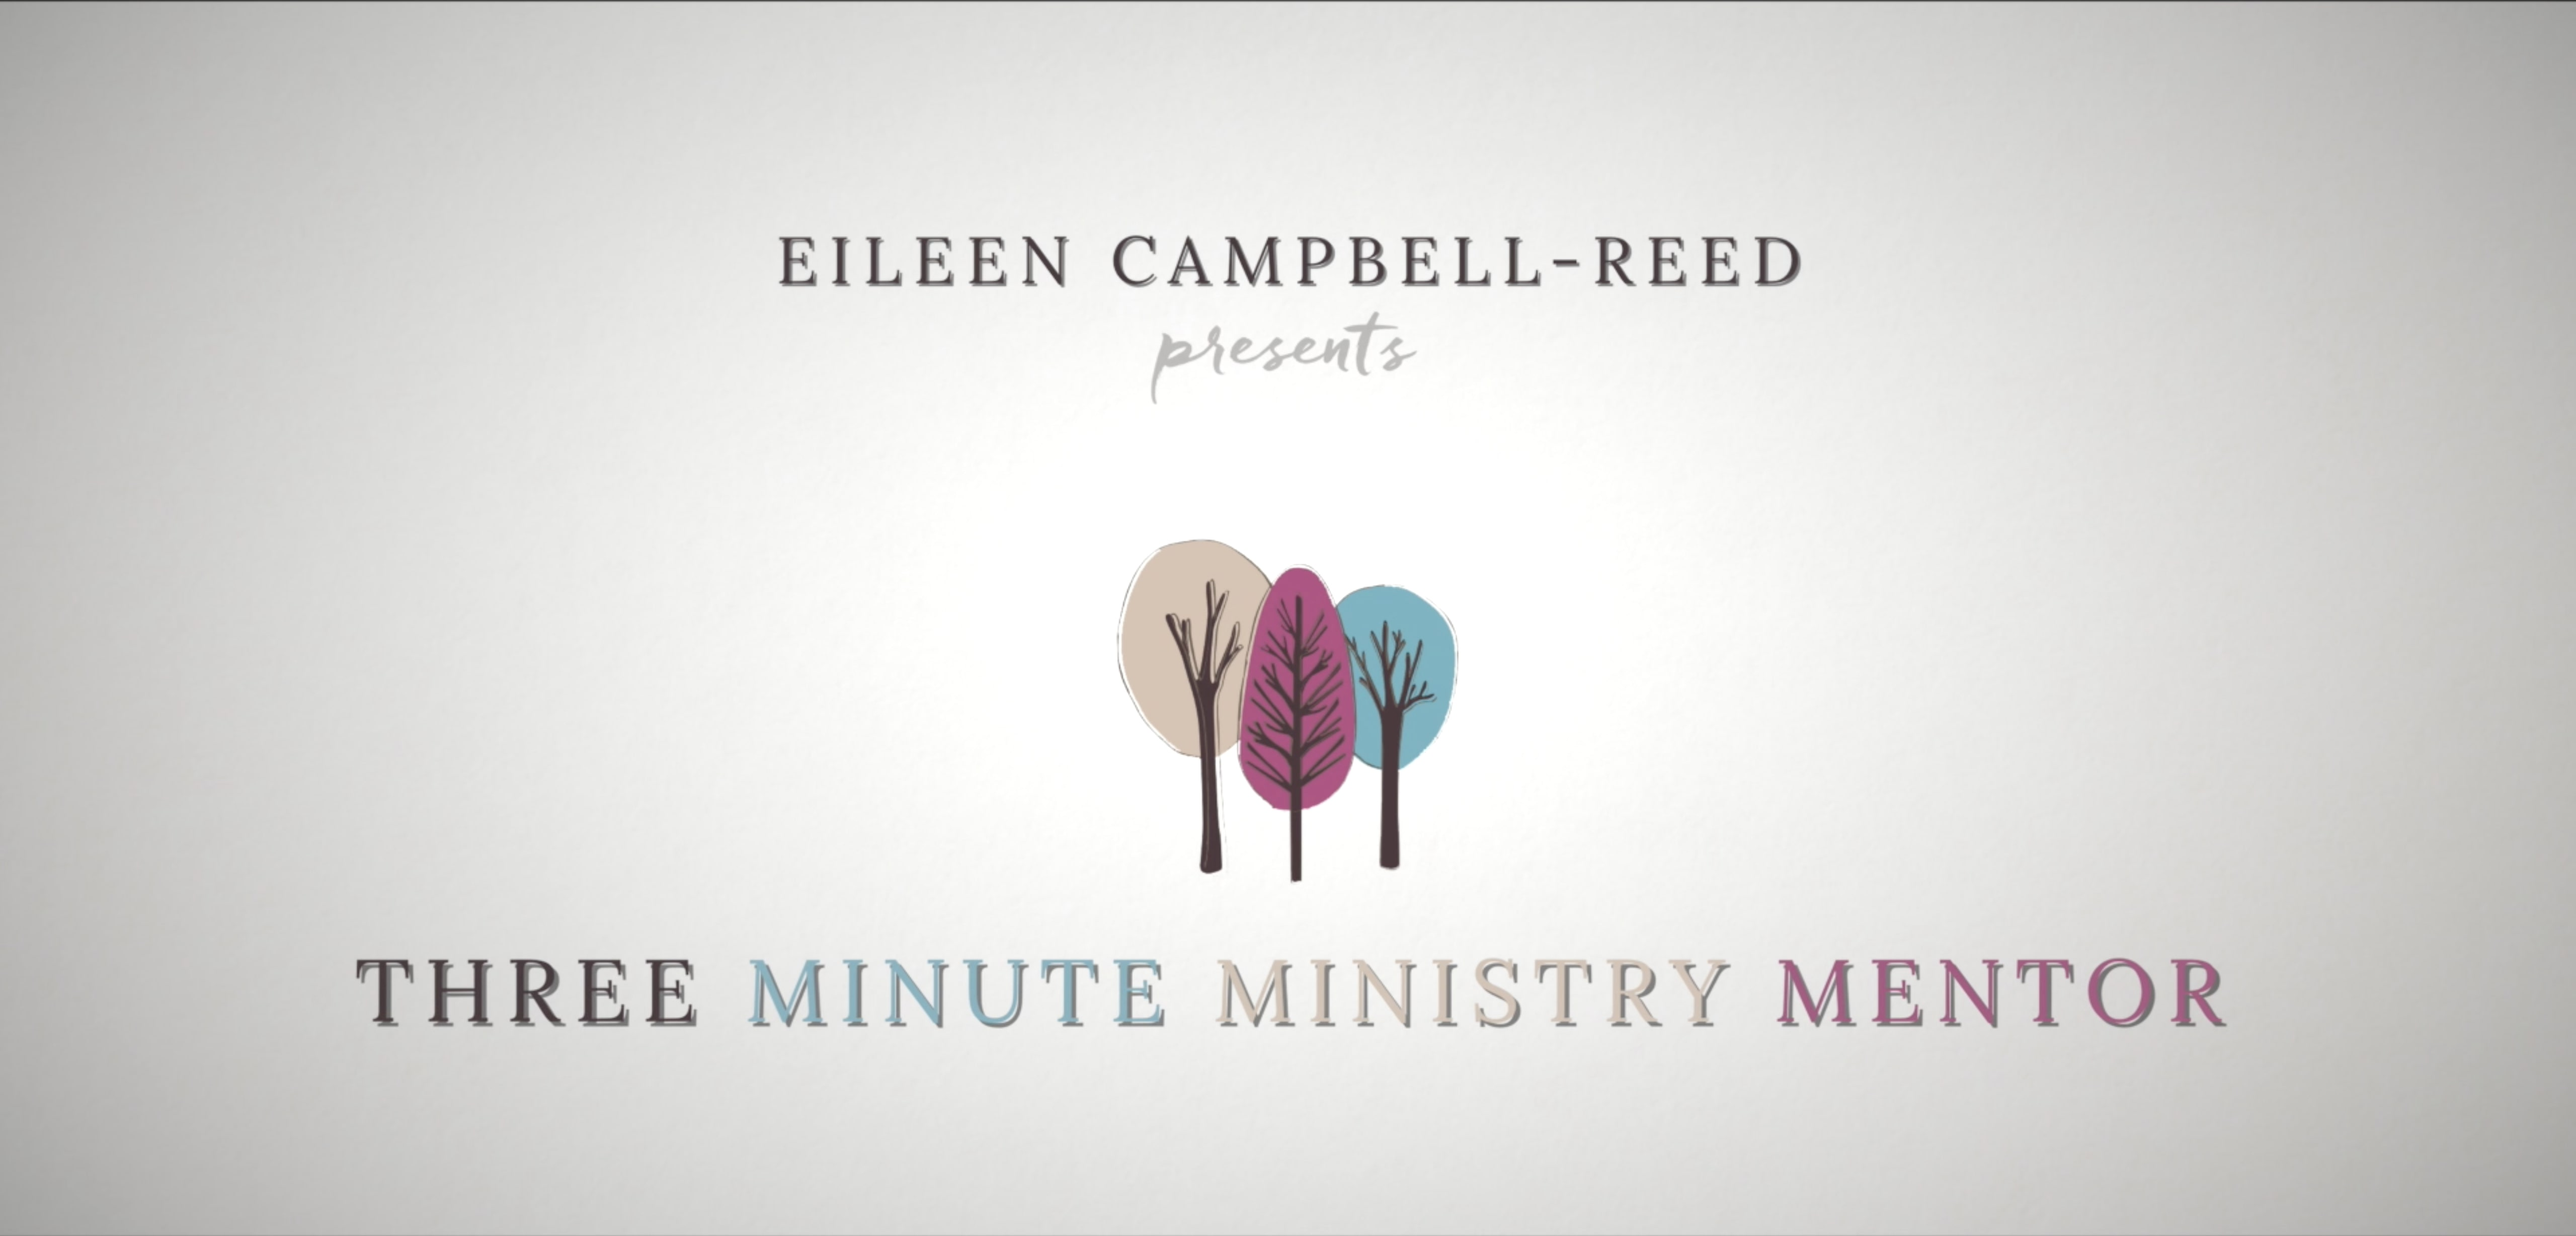 3 Minute Ministry Mentor a new project by Eileen Campbell-Reed